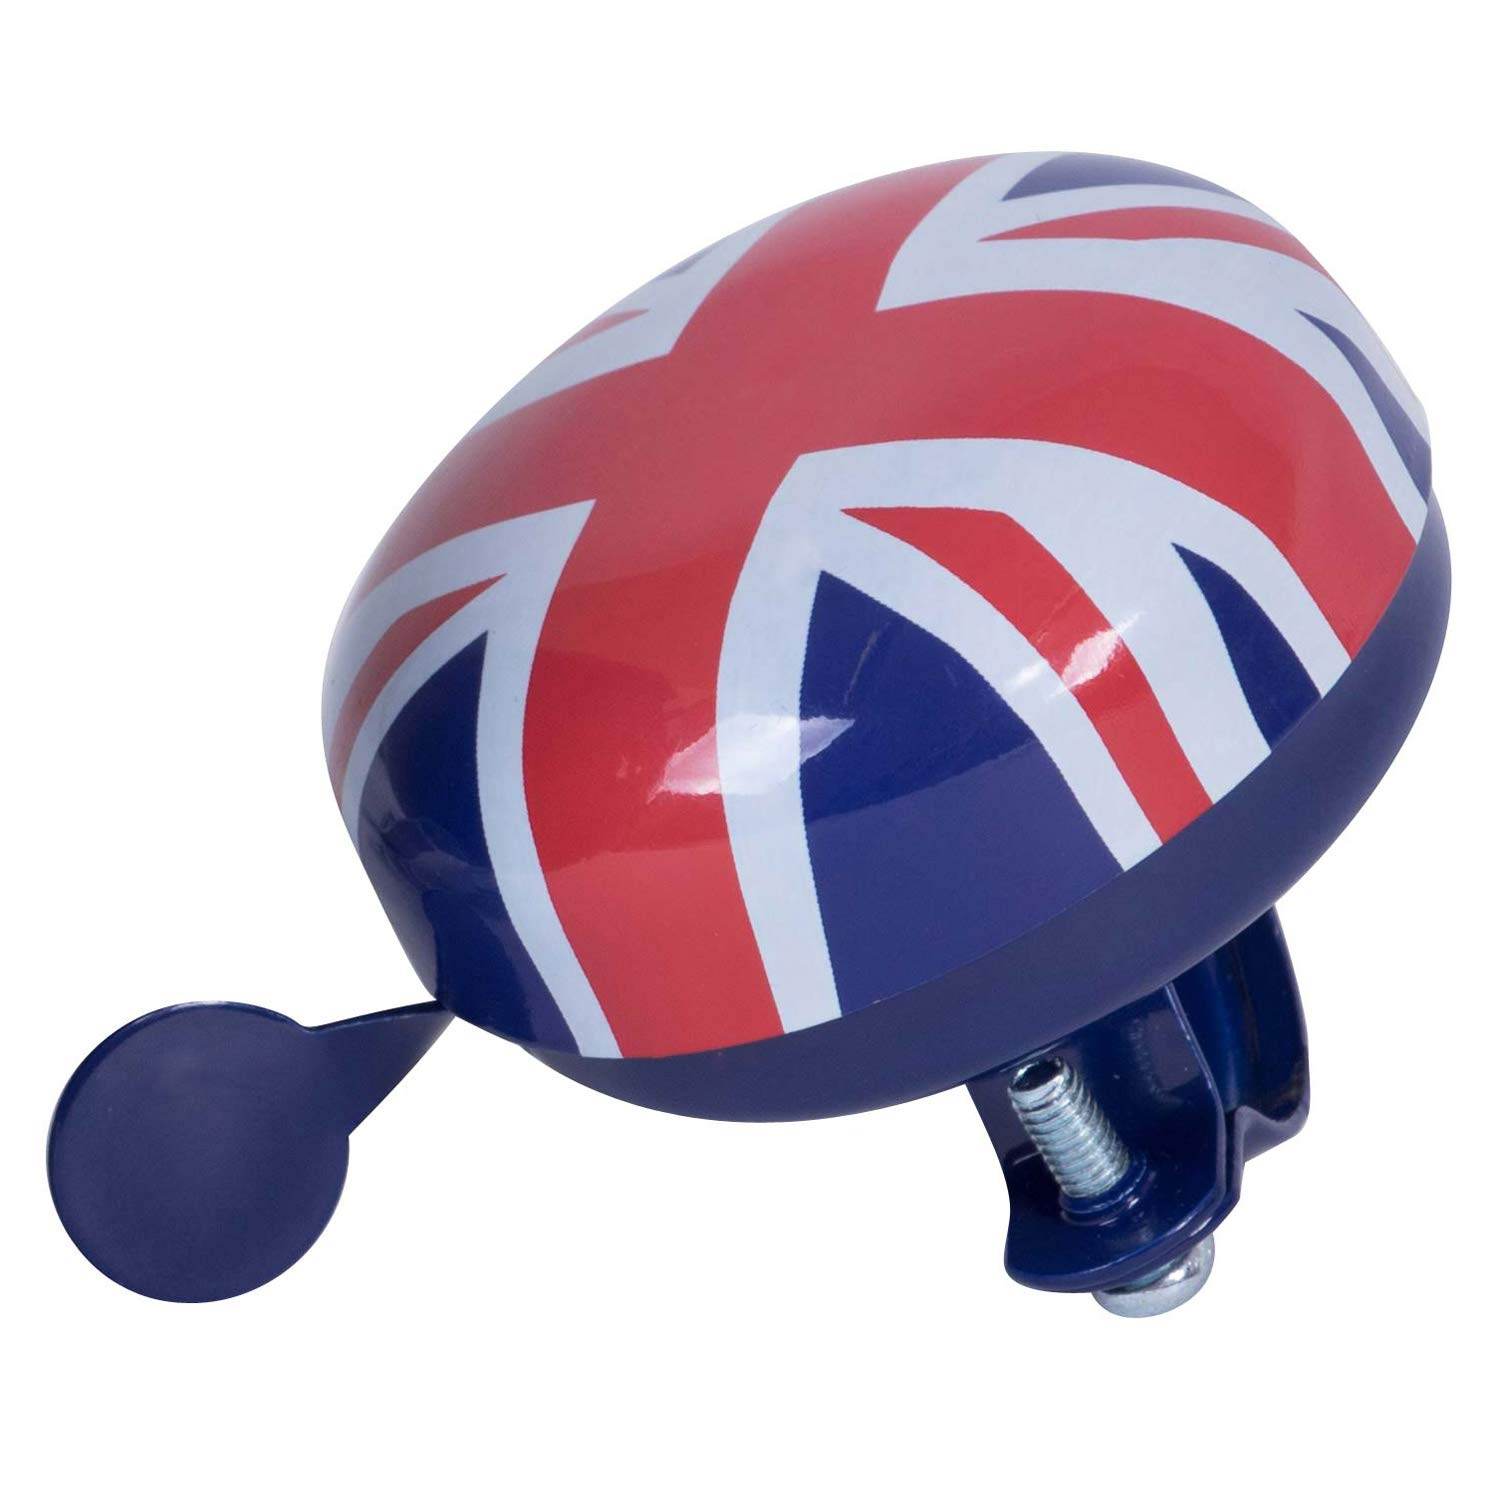 Kiddimoto BELLUJ-S Small Children's Bike Bicycle Scooter Metal Ding Dong Bell – Union Jack